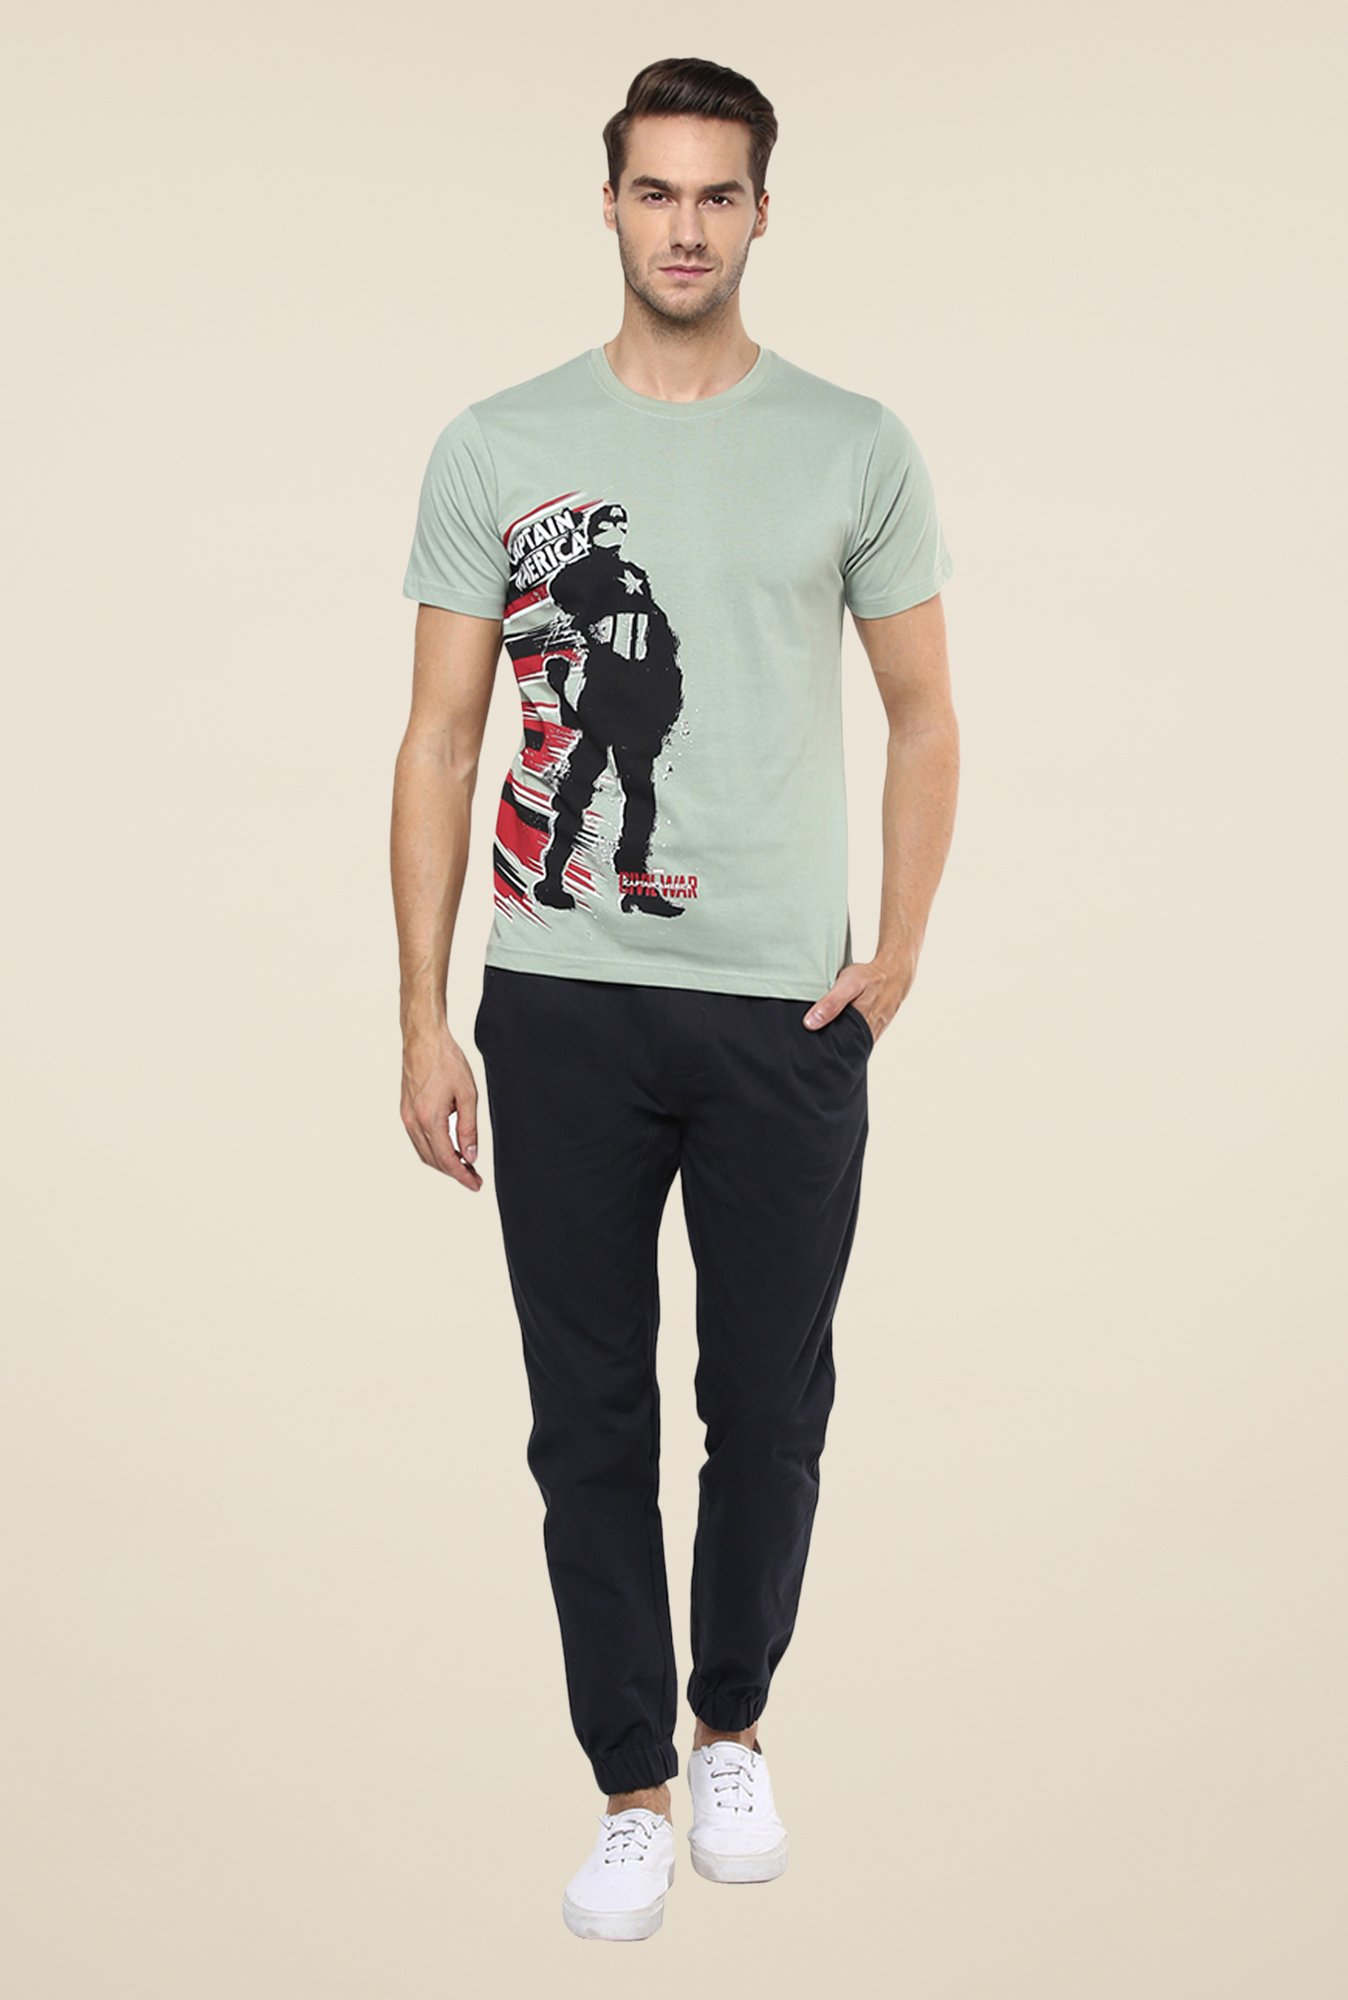 Yepme Civil War Captain America Silhouette Grey T Shirt